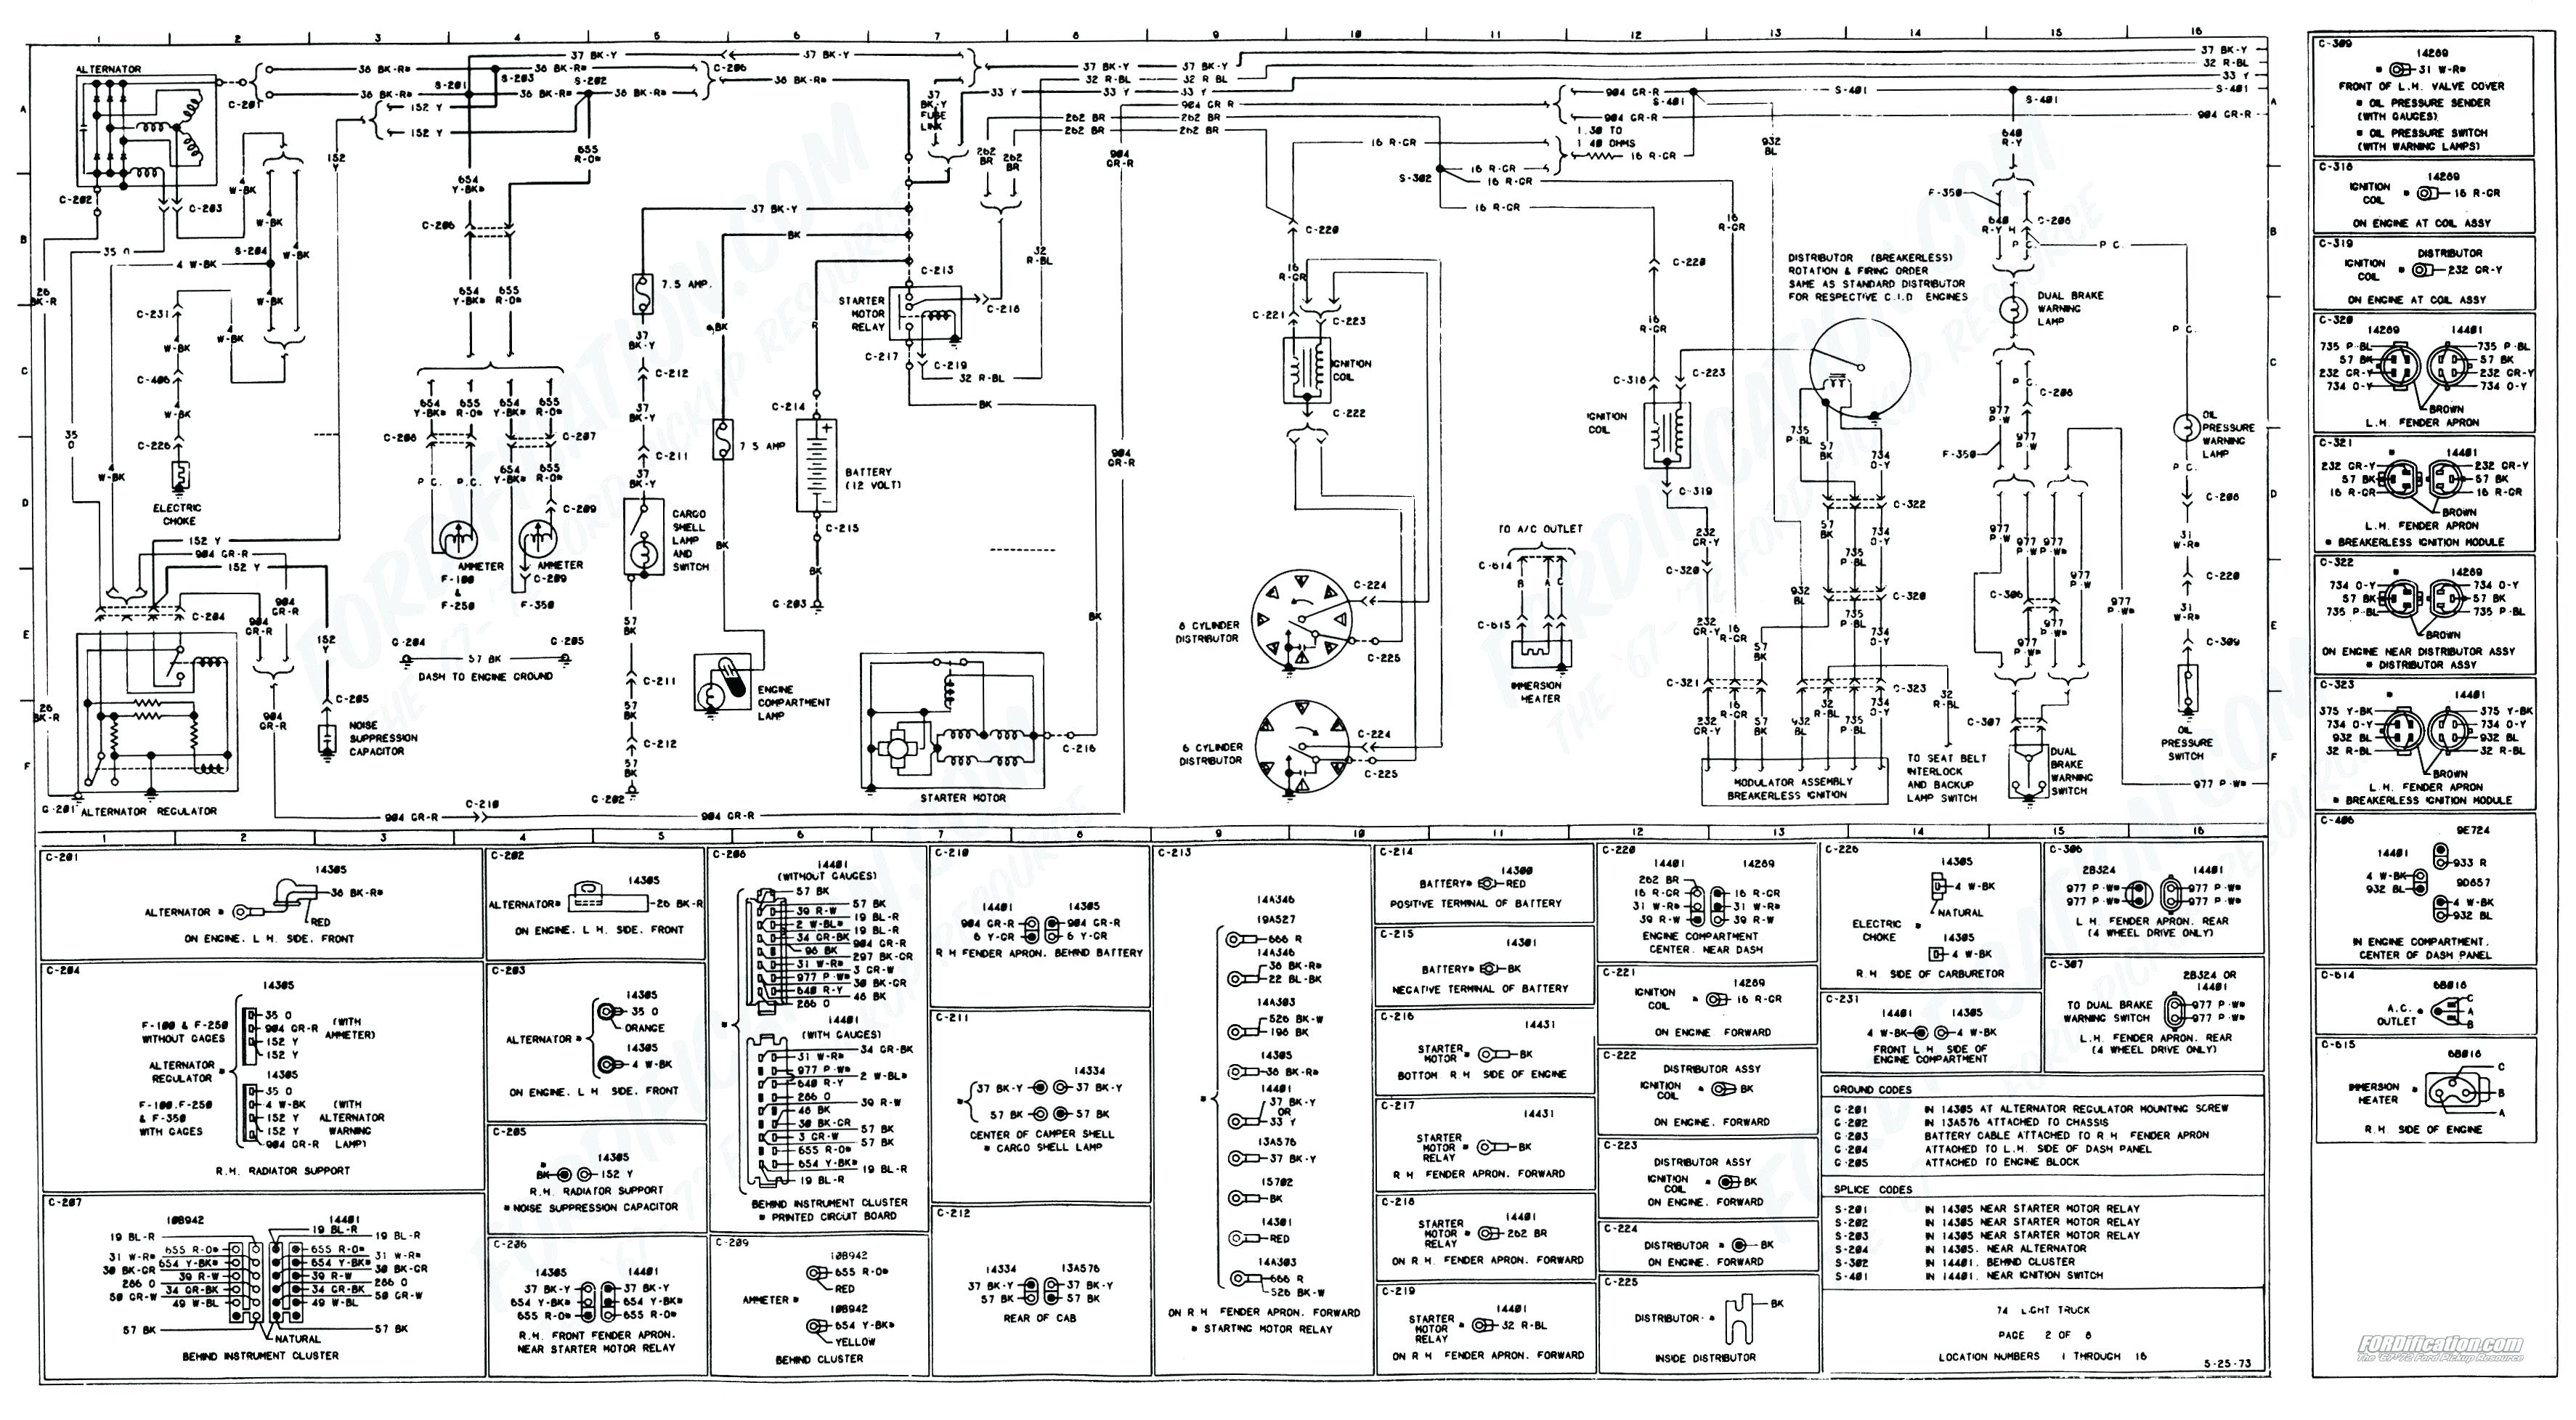 ford f650 wiring diagram Download-2003 ford F650 Fuse Box Diagram Best 2005 F 650 Wiring Diagram Generous ford Contemporary 11-j